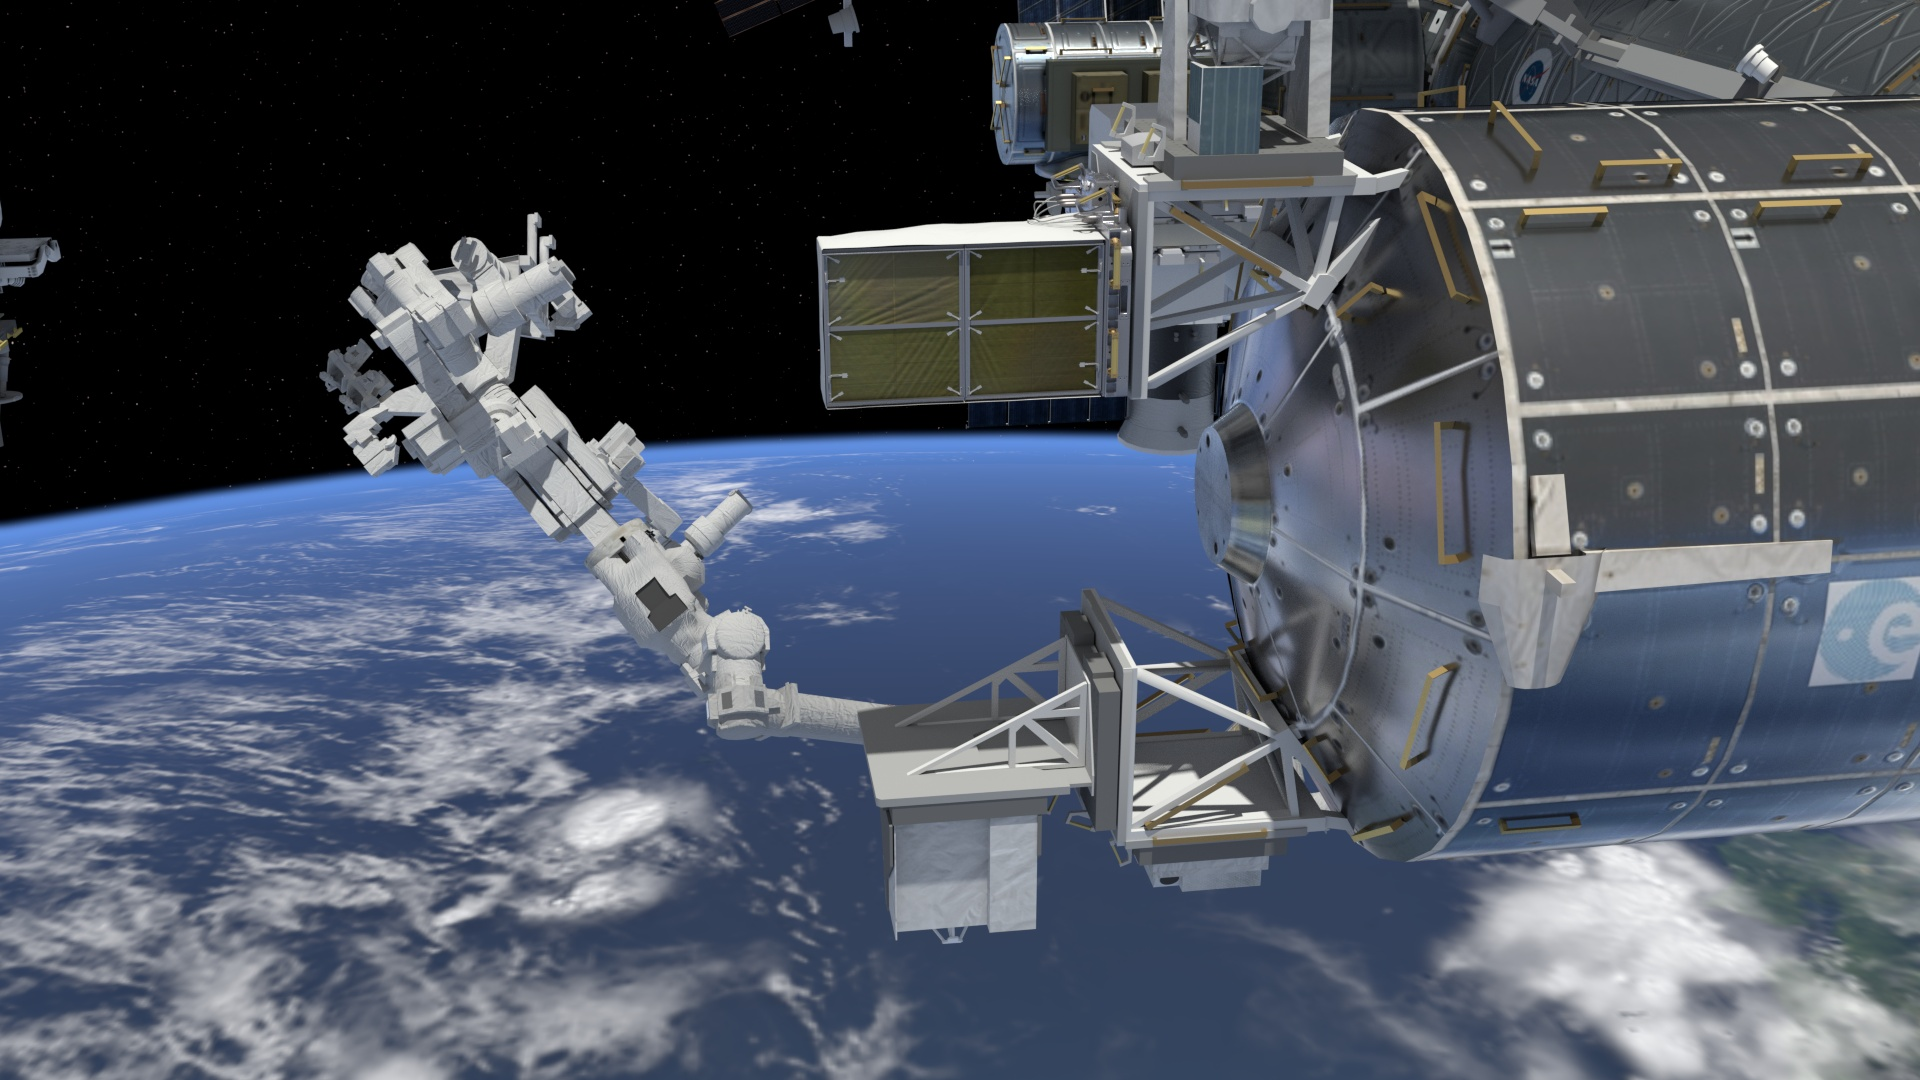 An artist's impression of the International Space Station's new space debris-monitoring sensor.